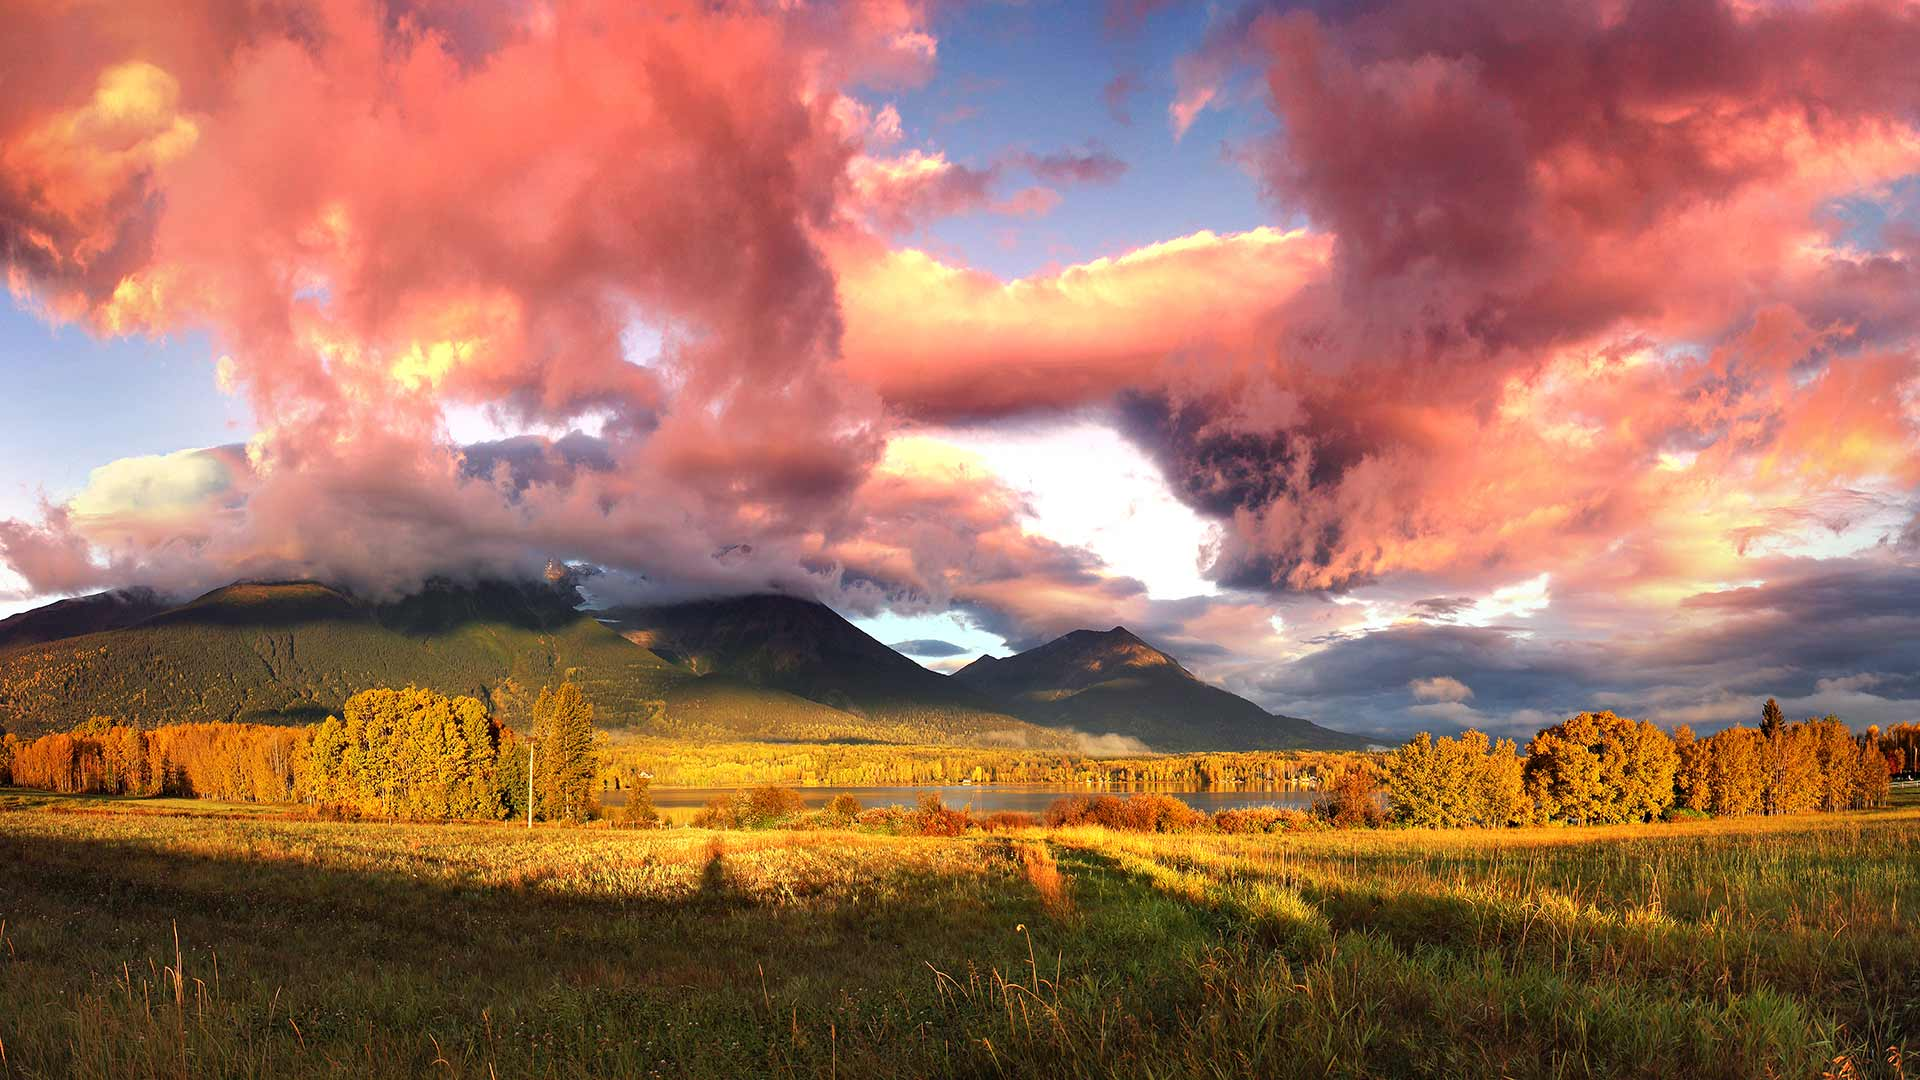 Panorama to illustrate dating in smithers